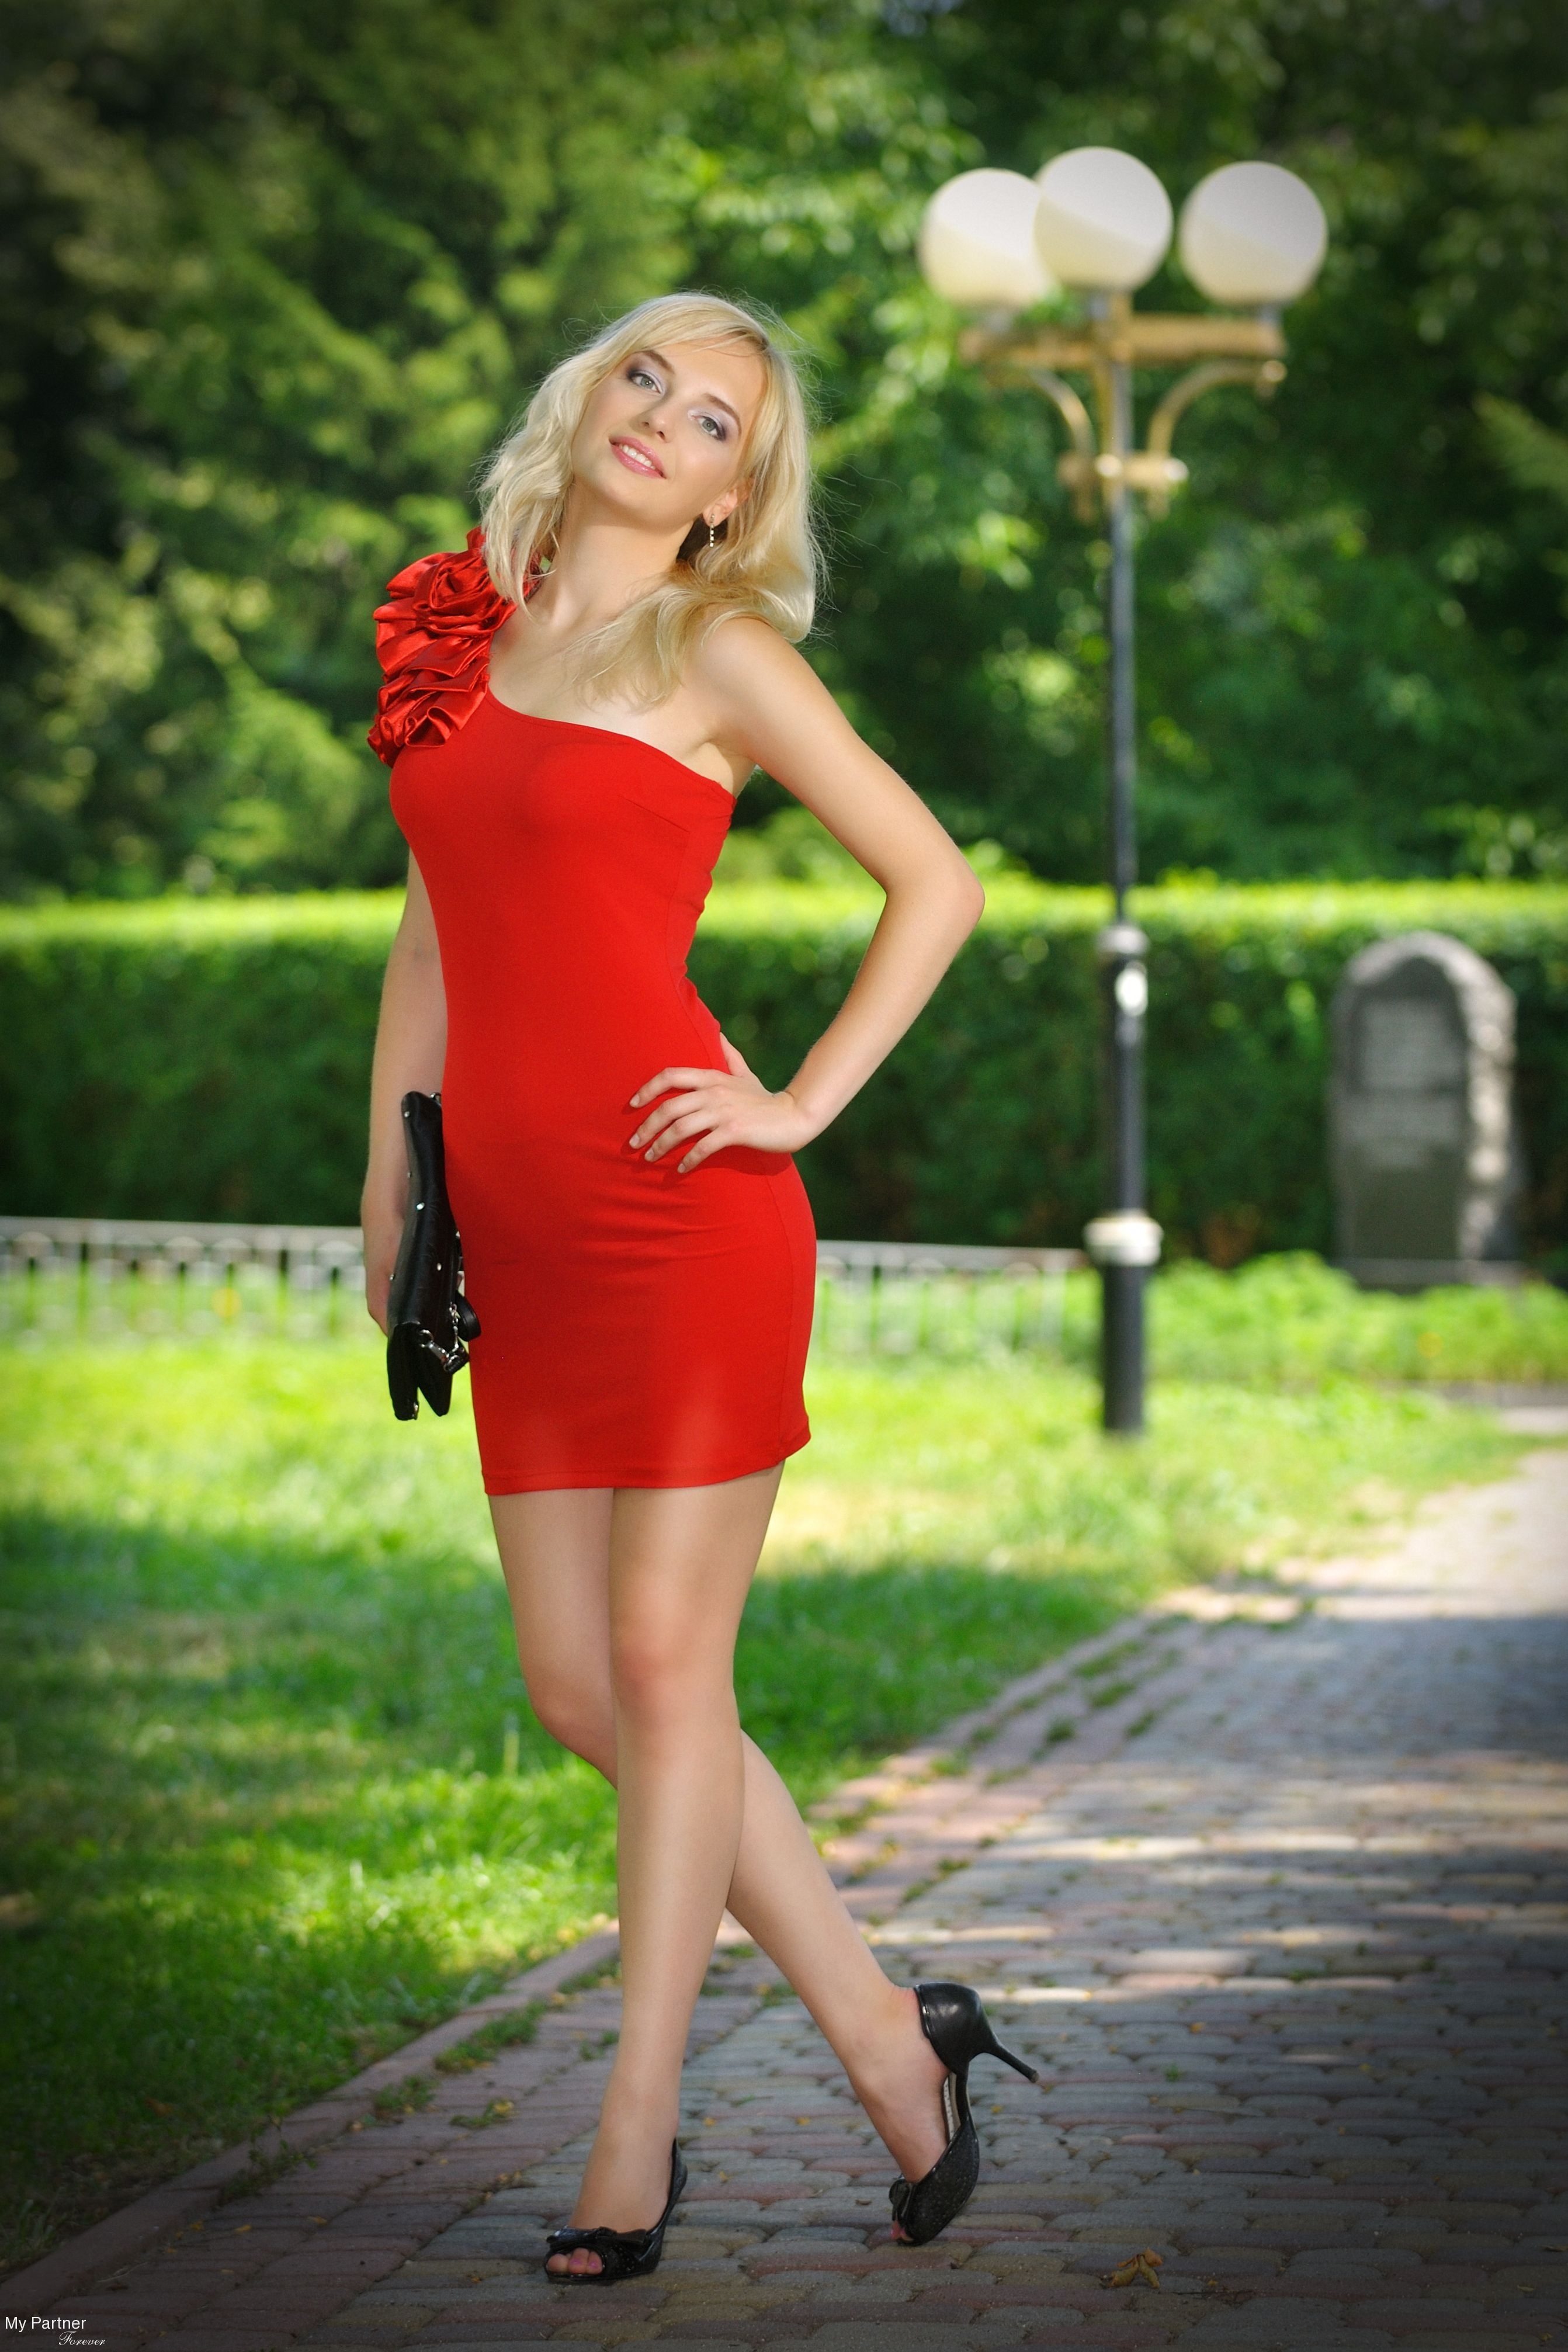 California online dating russian